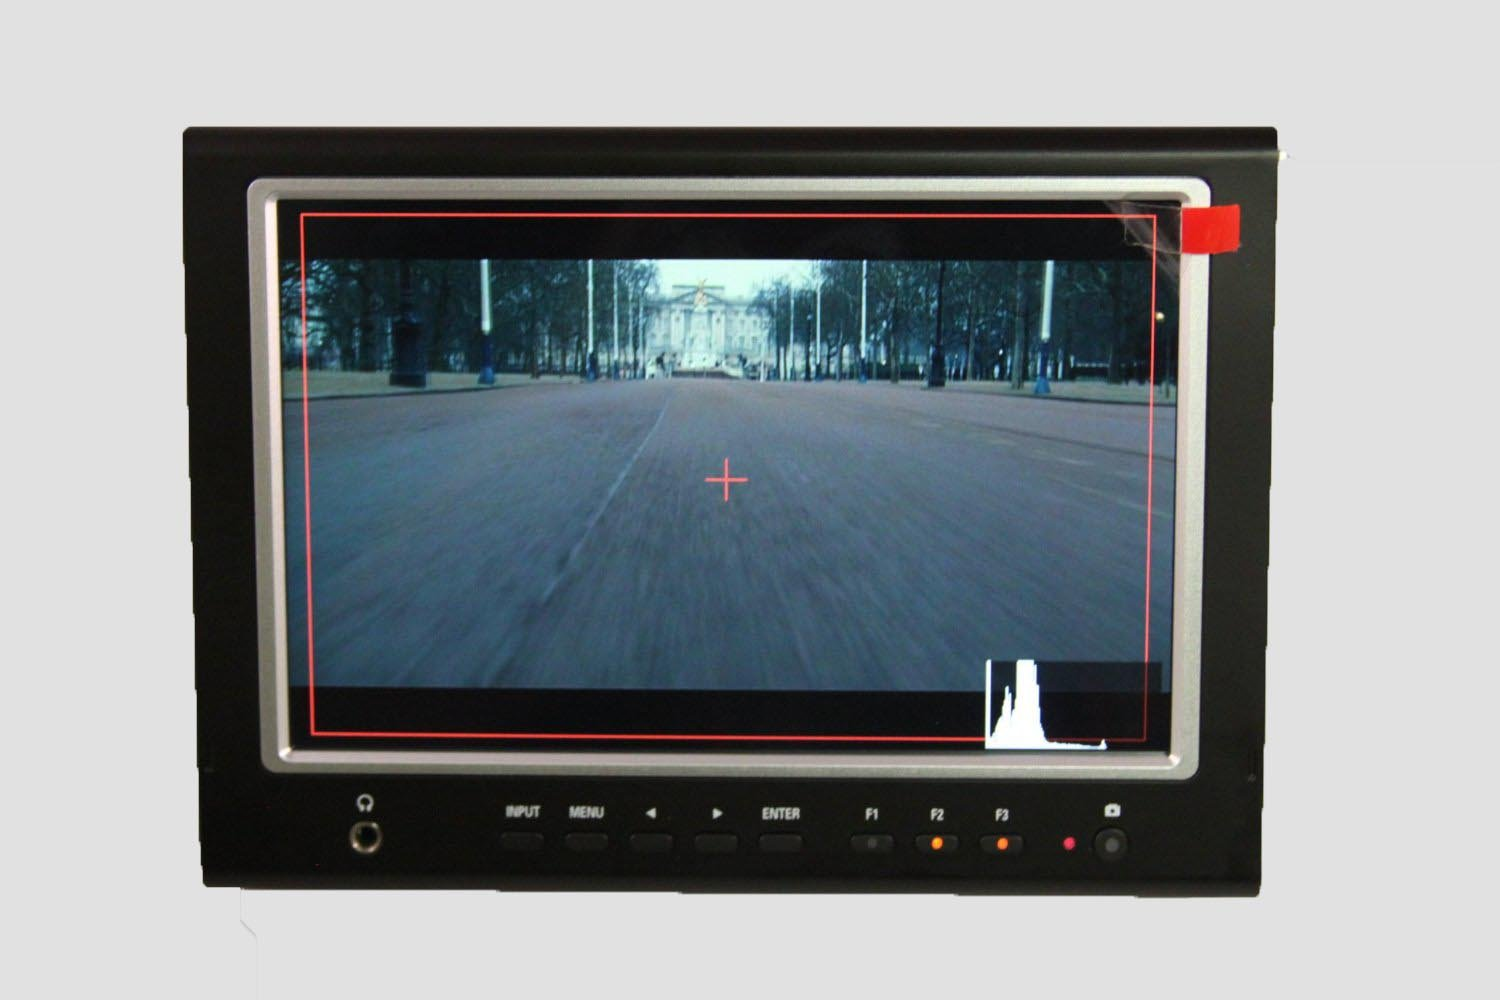 LILLIPUT 7'' 664/O/P Slim Camera-top Monitor with Hdmi/in&Out+AV in W/Peaking Zebra Exposure Filter +IPS Broadcast Quality for DSLR & Full Hd Camecorder by Lilliput